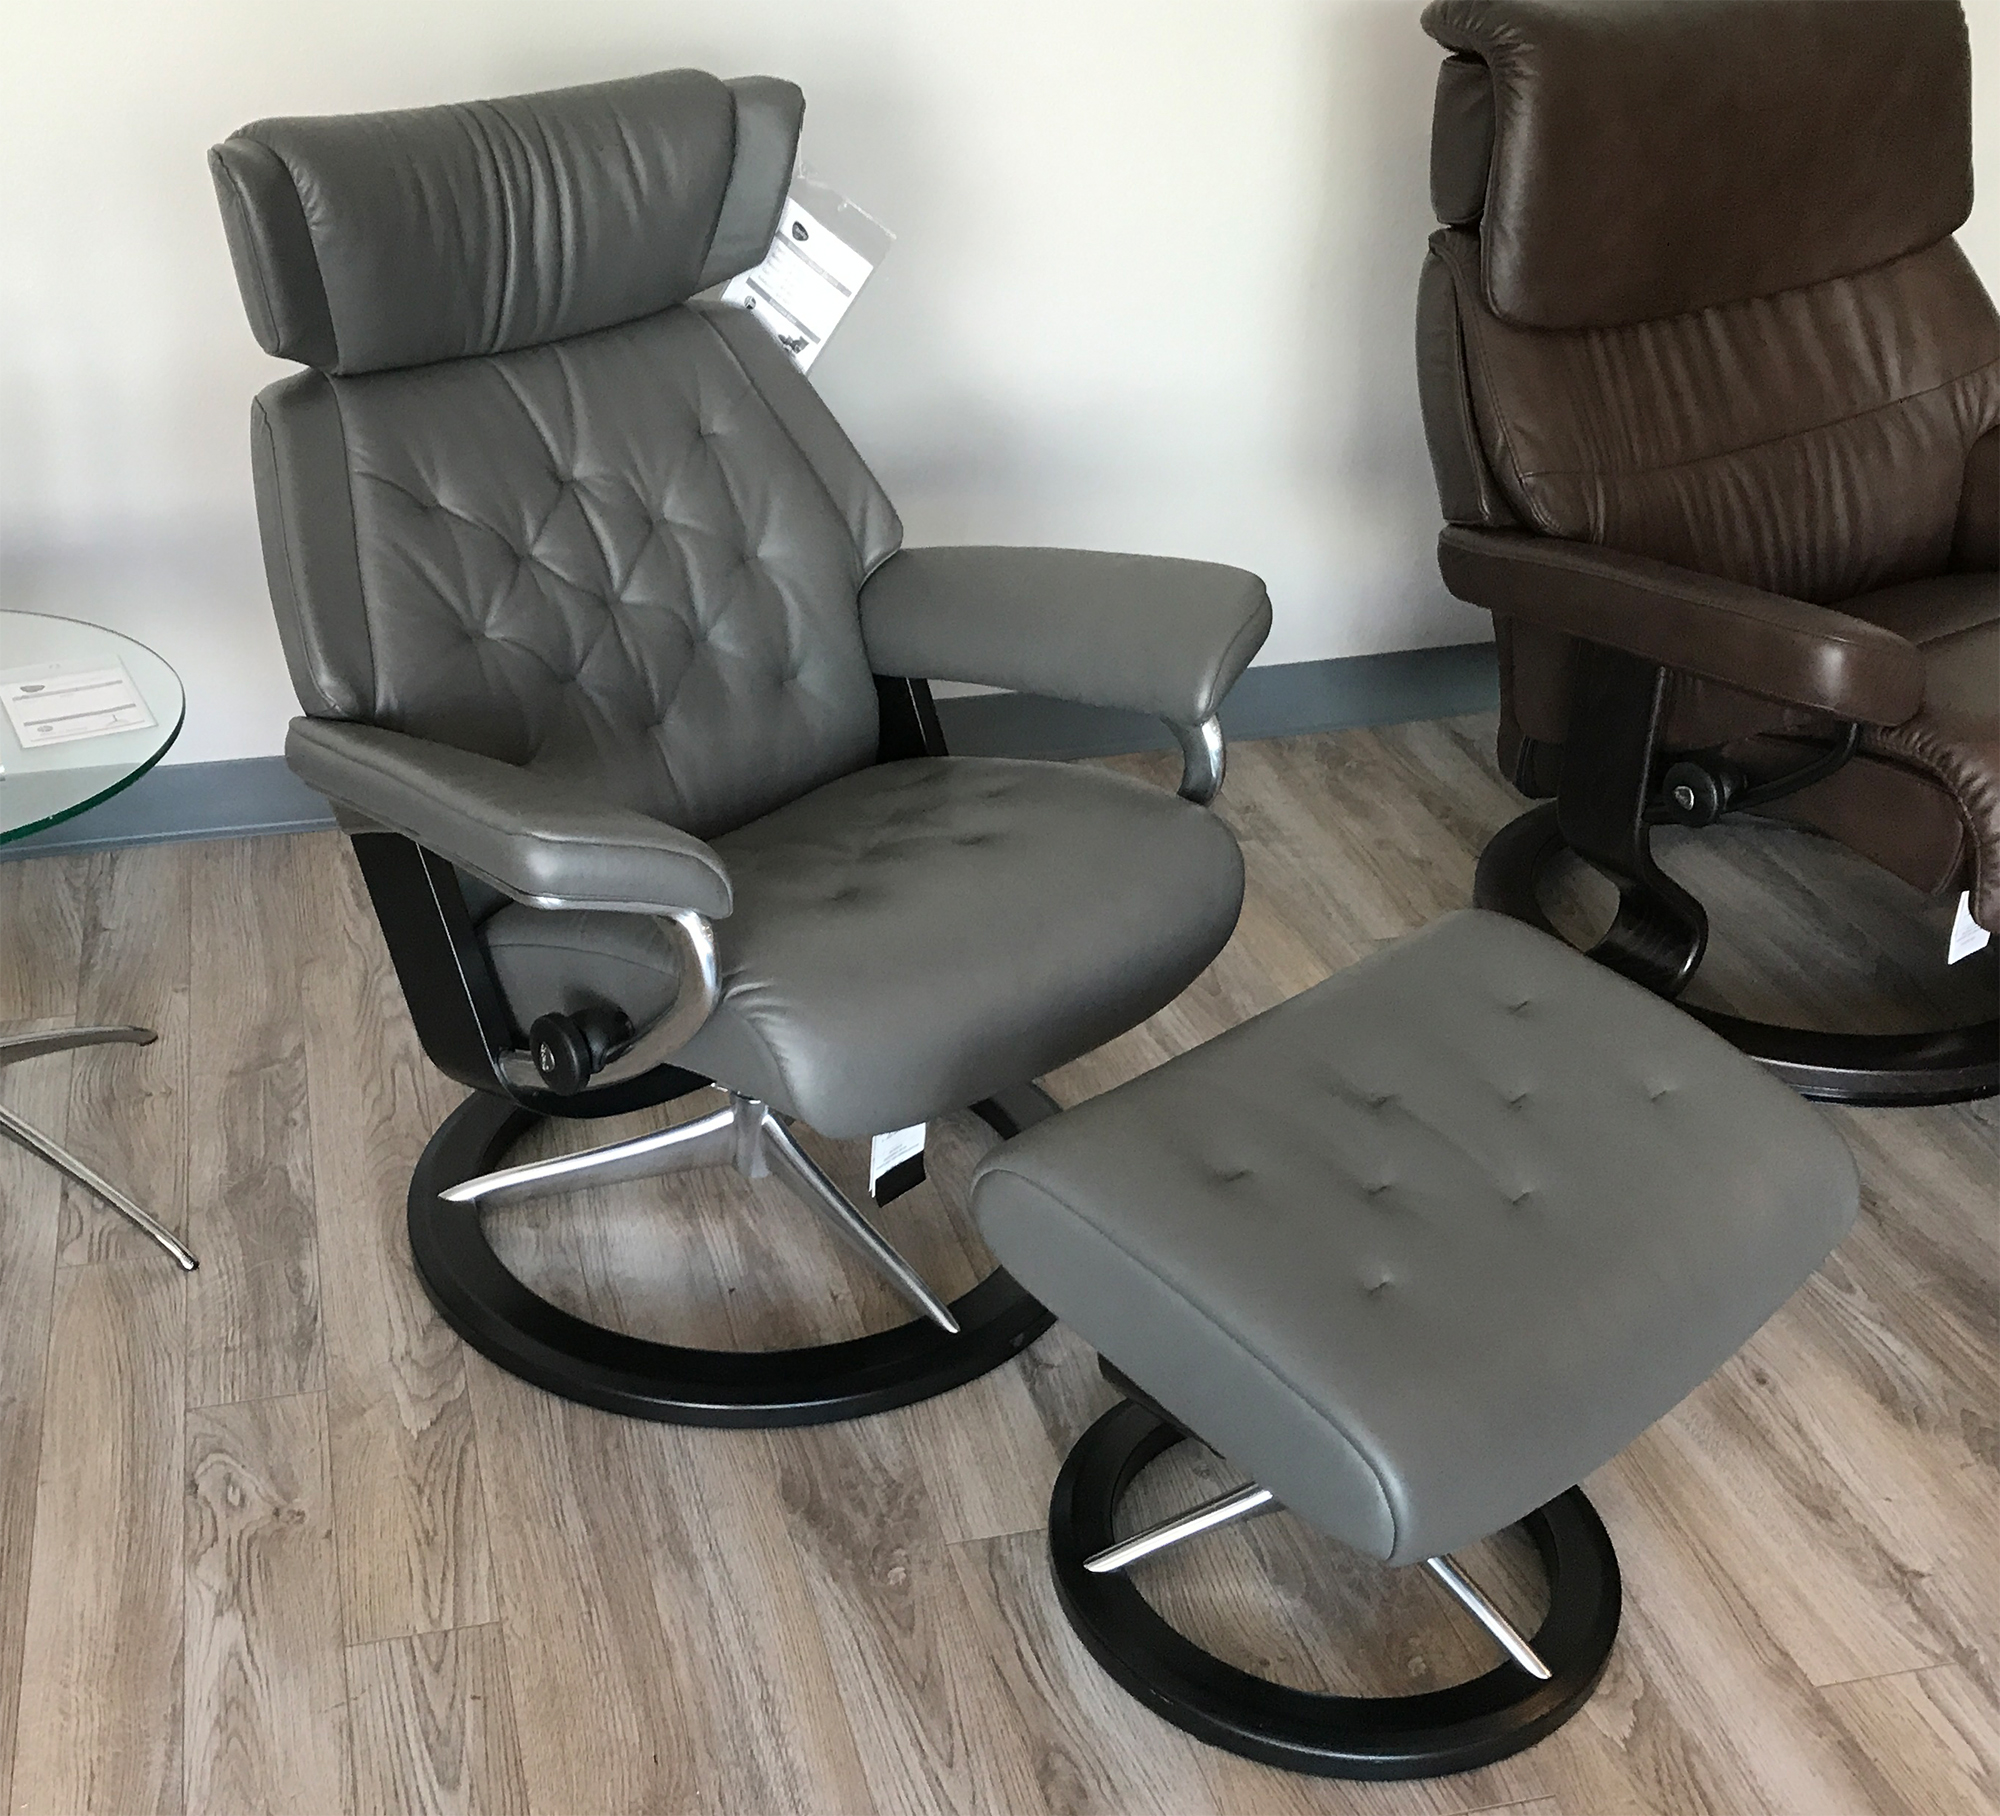 Stressless Skyline Signature Base Paloma Metal Grey Leather Recliner Chair and Ottoman by Ekornes : leather armchair recliner - islam-shia.org